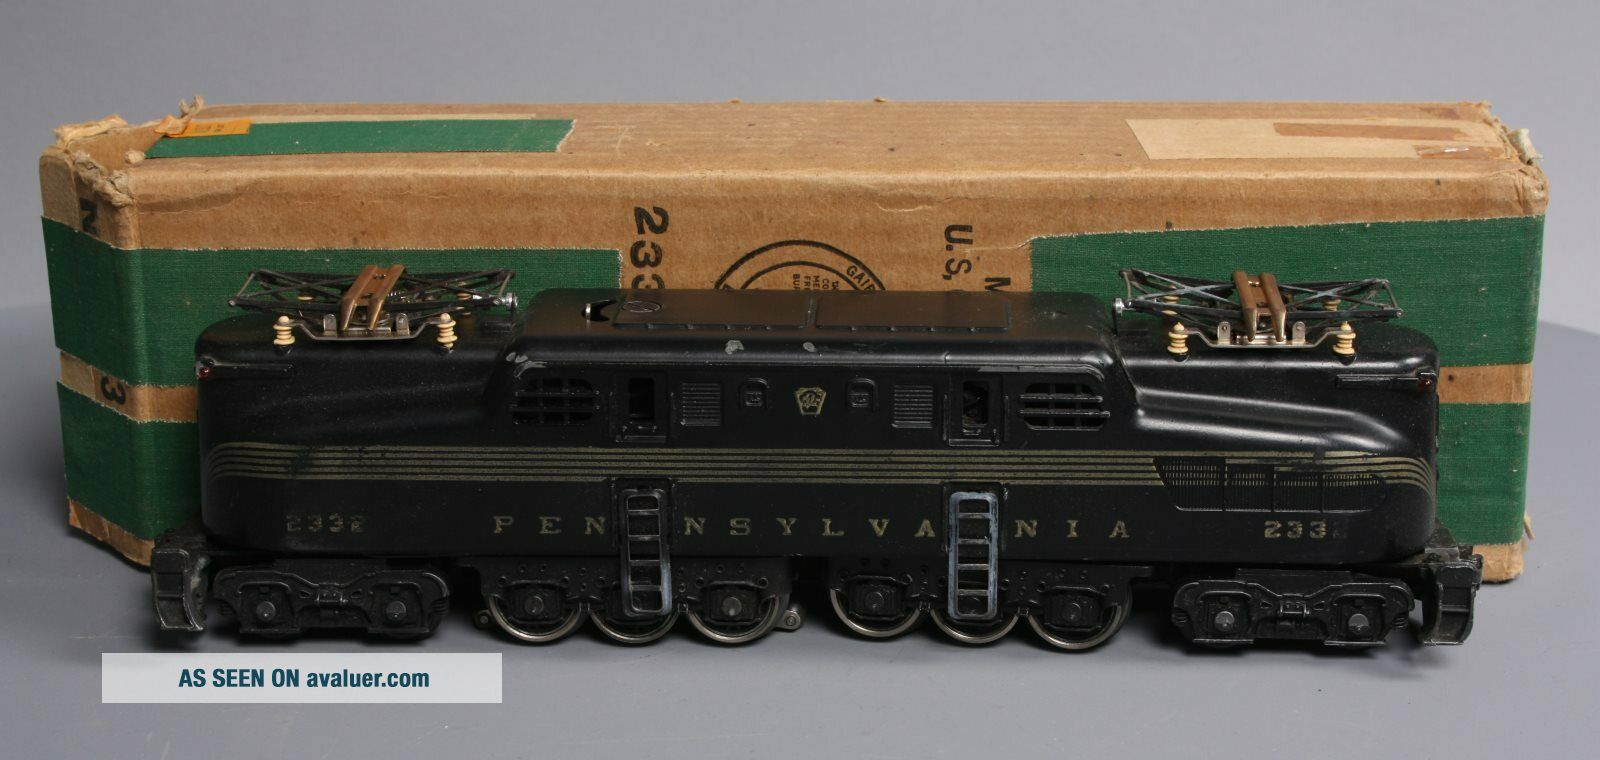 Lionel 2332 Pennsylvania Powered GG - 1 Electric Locomotive - Early Black Version